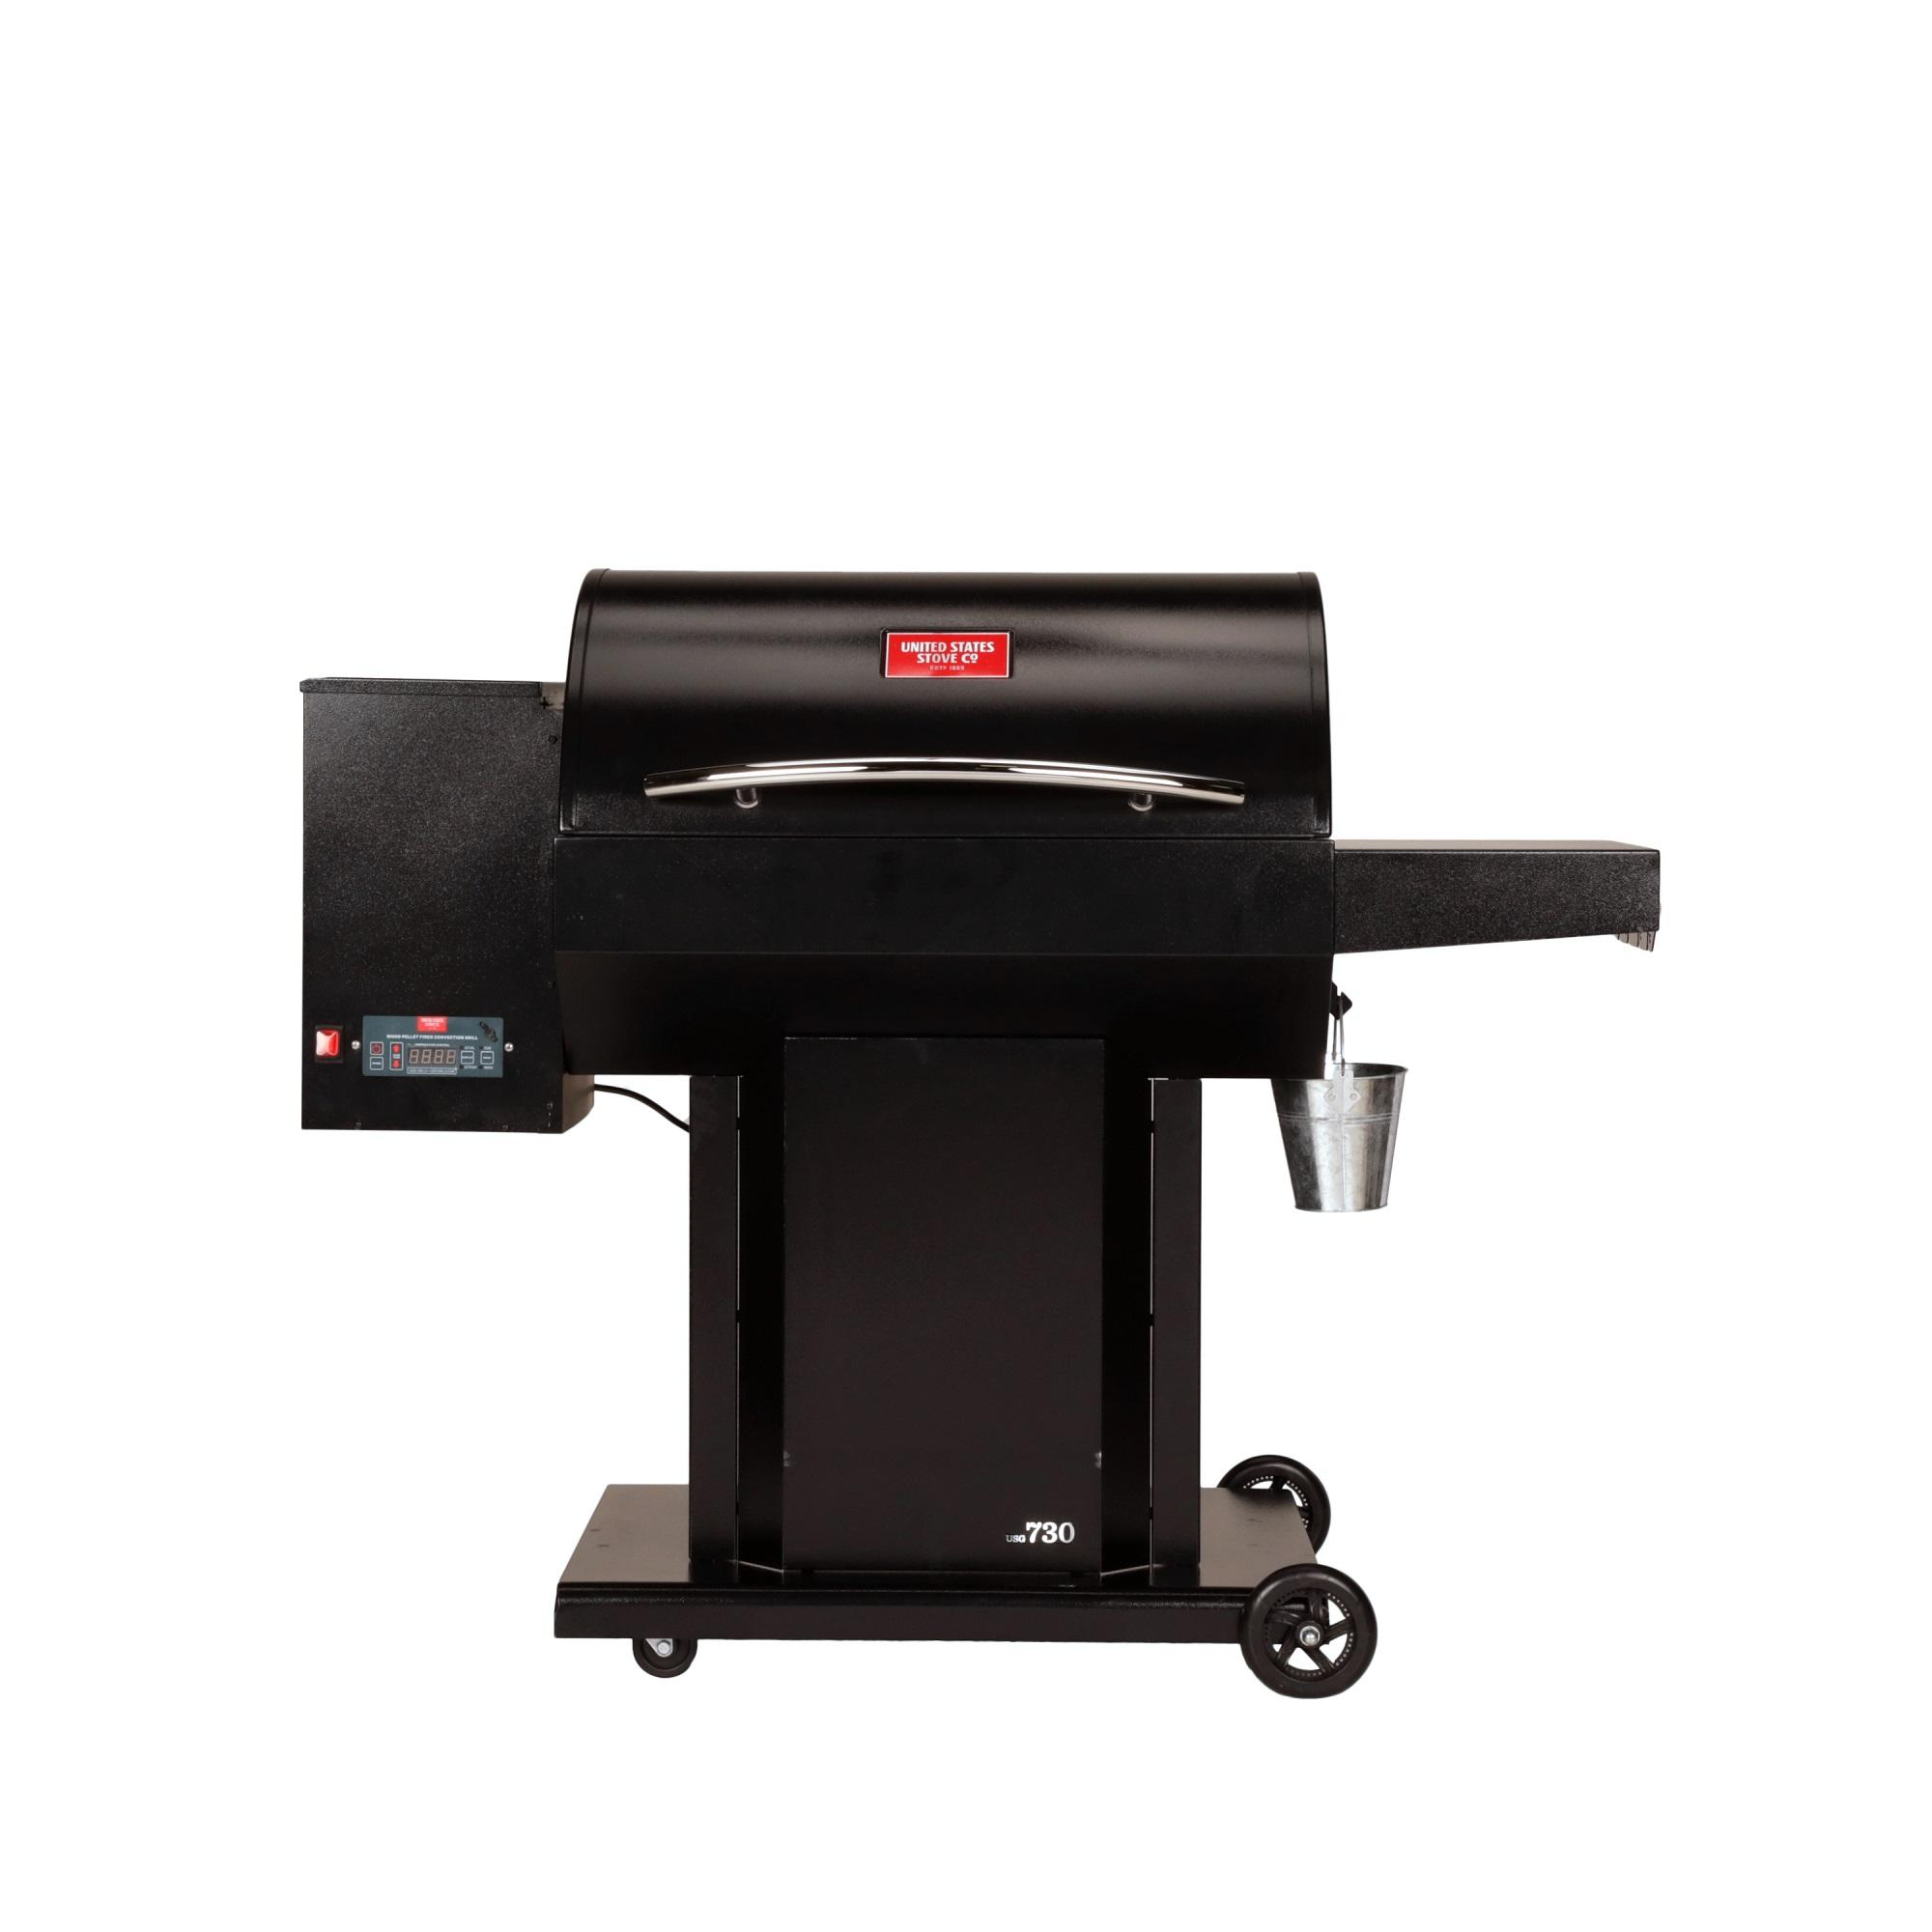 The USG730 Cumberland Wood Pellet Grill and Smoker